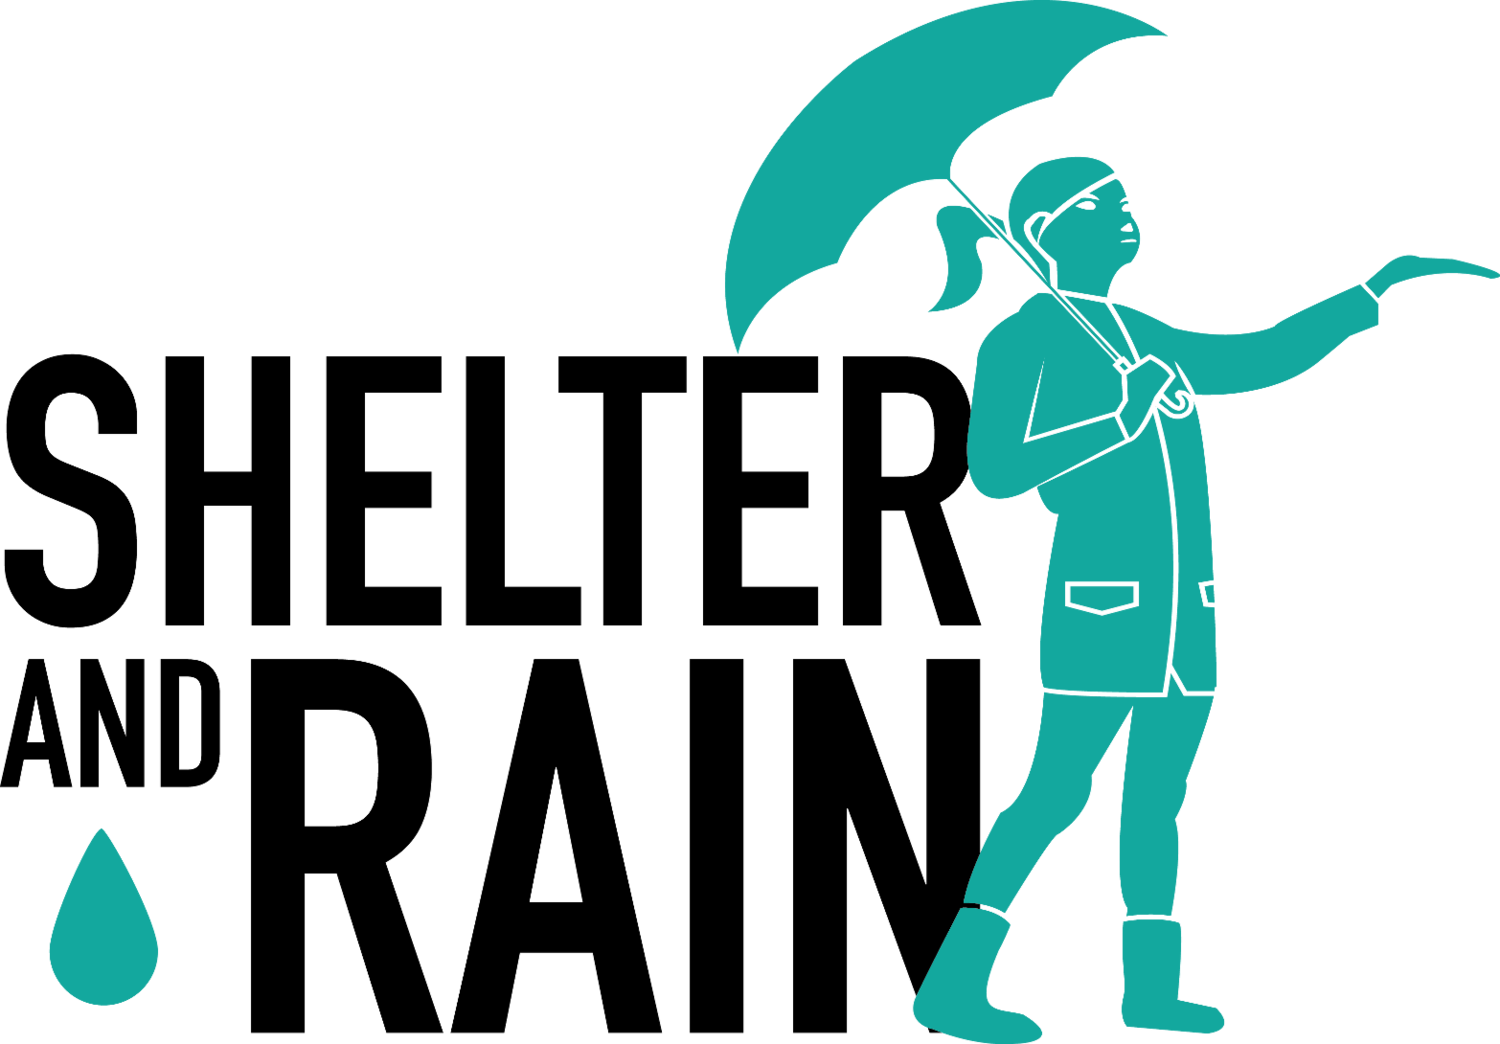 Excited clipart rejoice in lord. Shelter and rain human